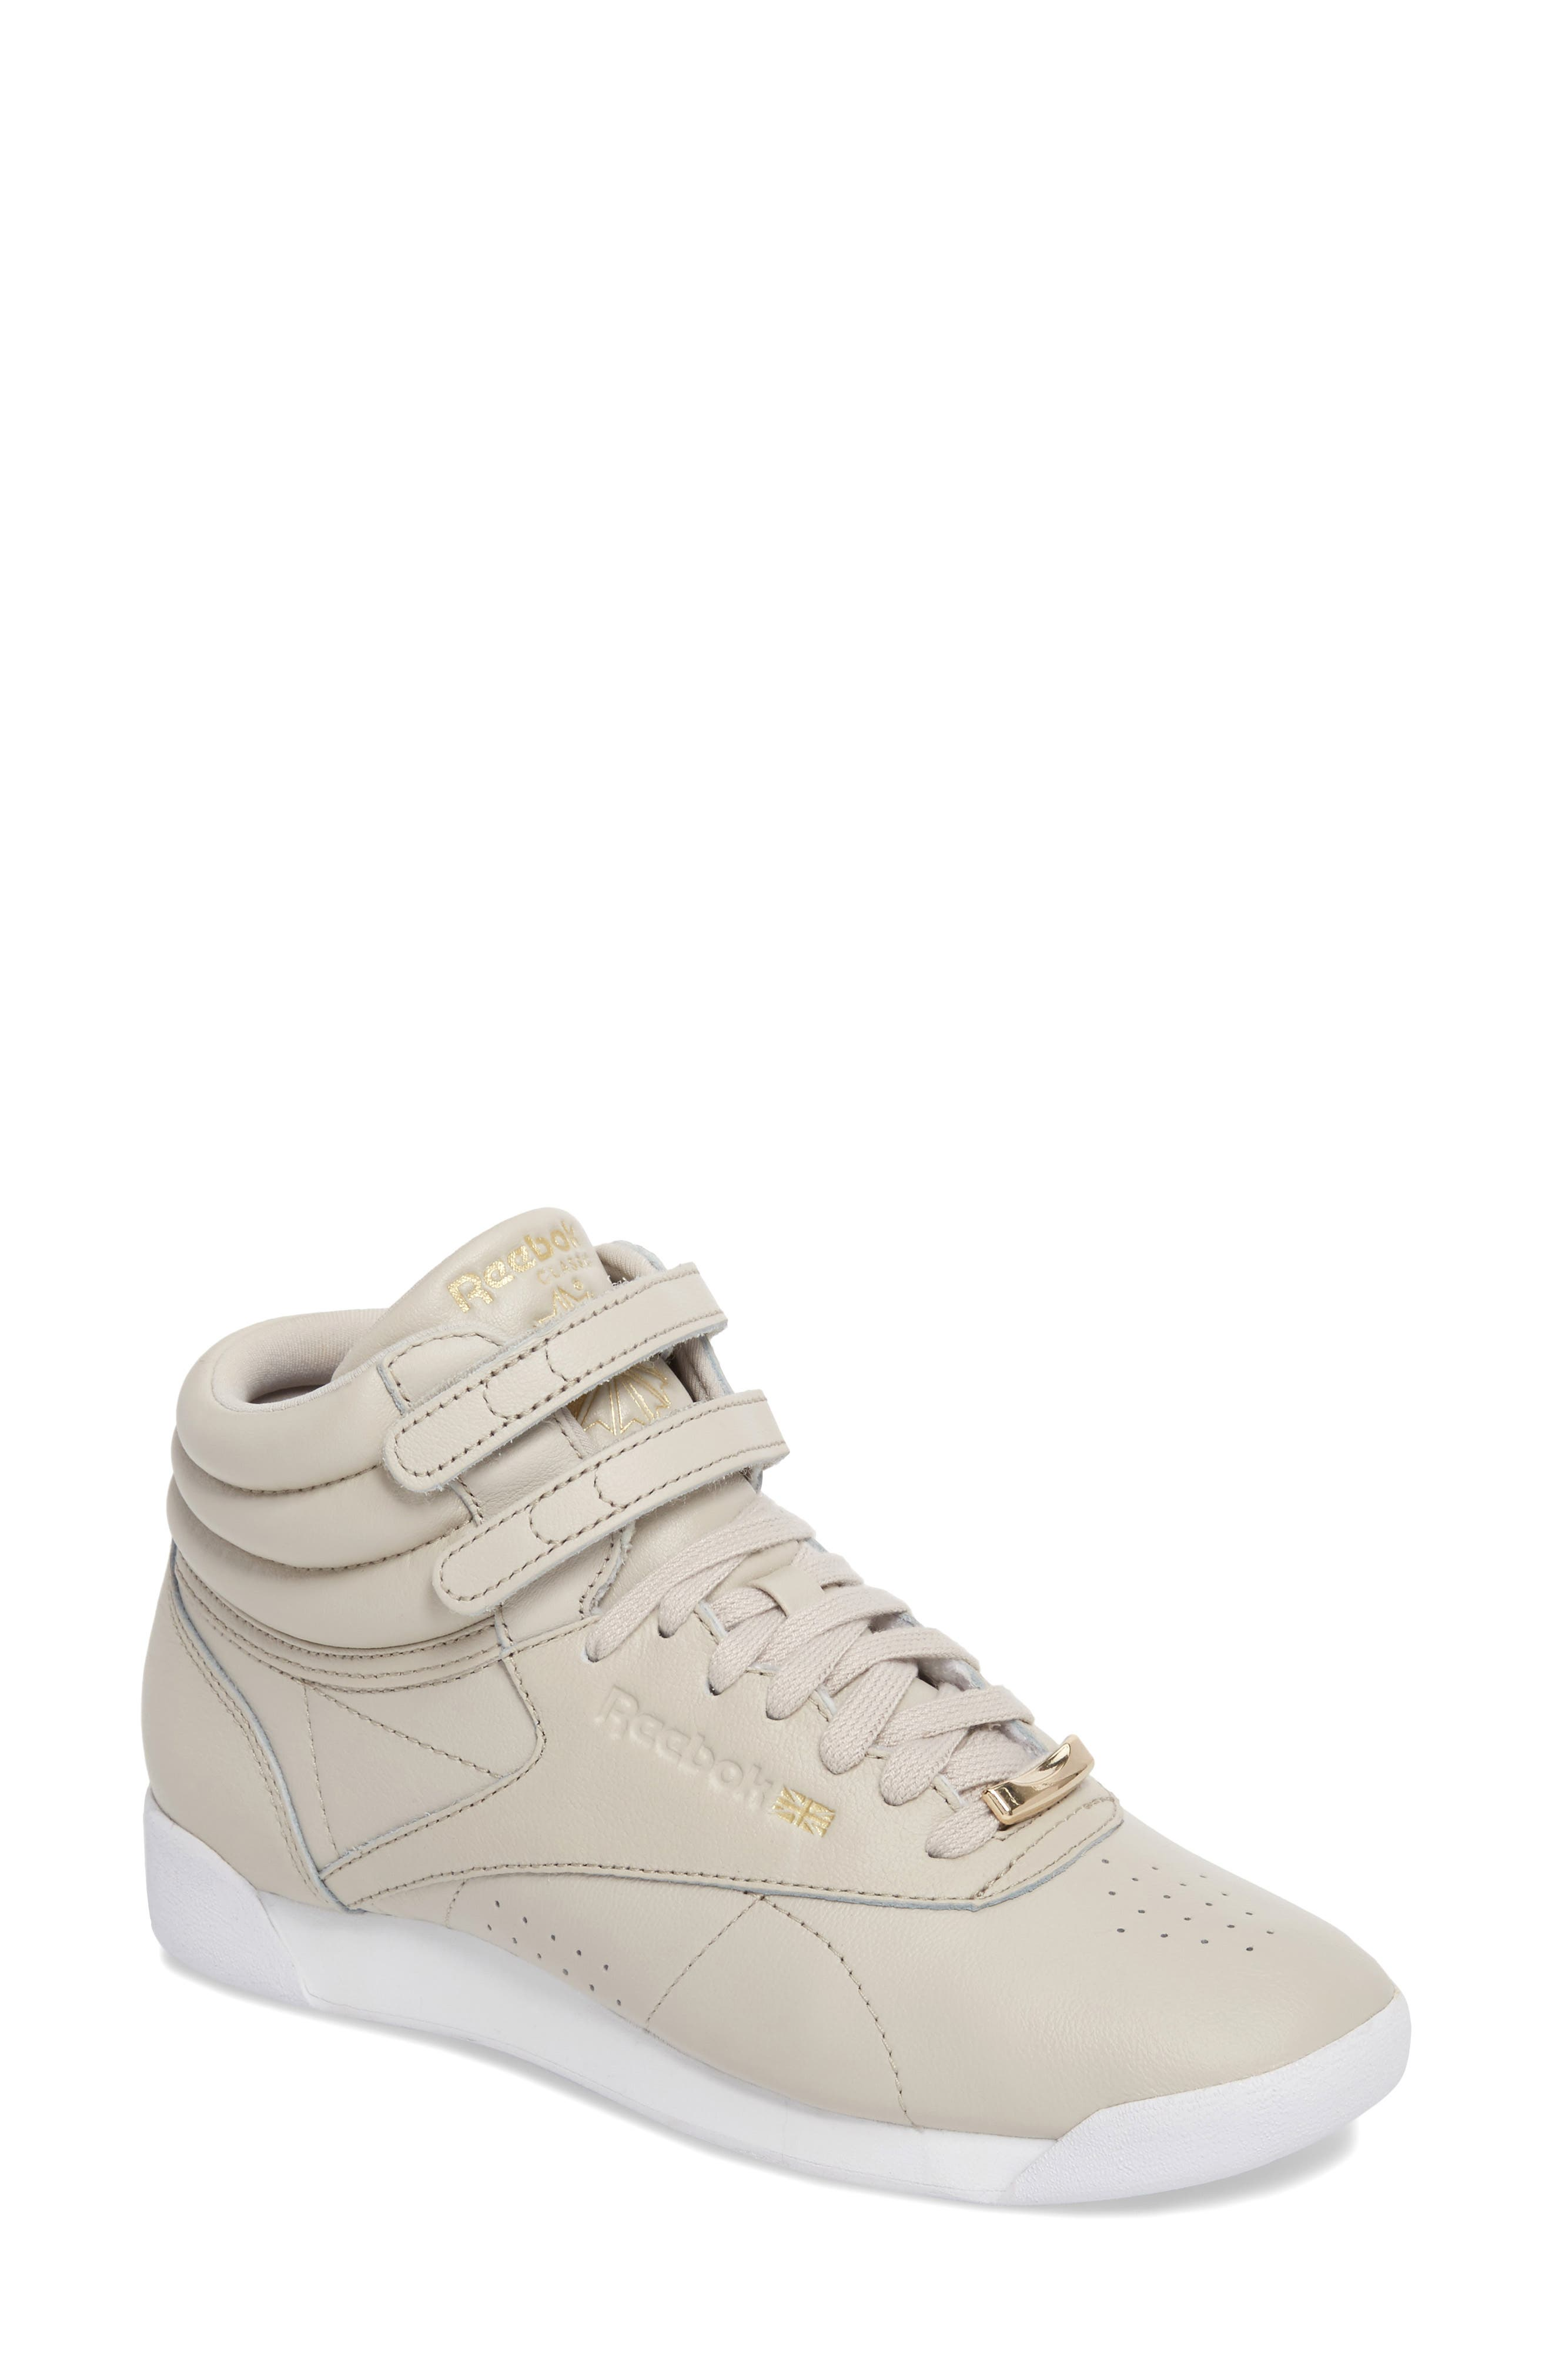 Freestyle Hi Muted Sneaker,                             Main thumbnail 1, color,                             SANDSTONE/ WHITE